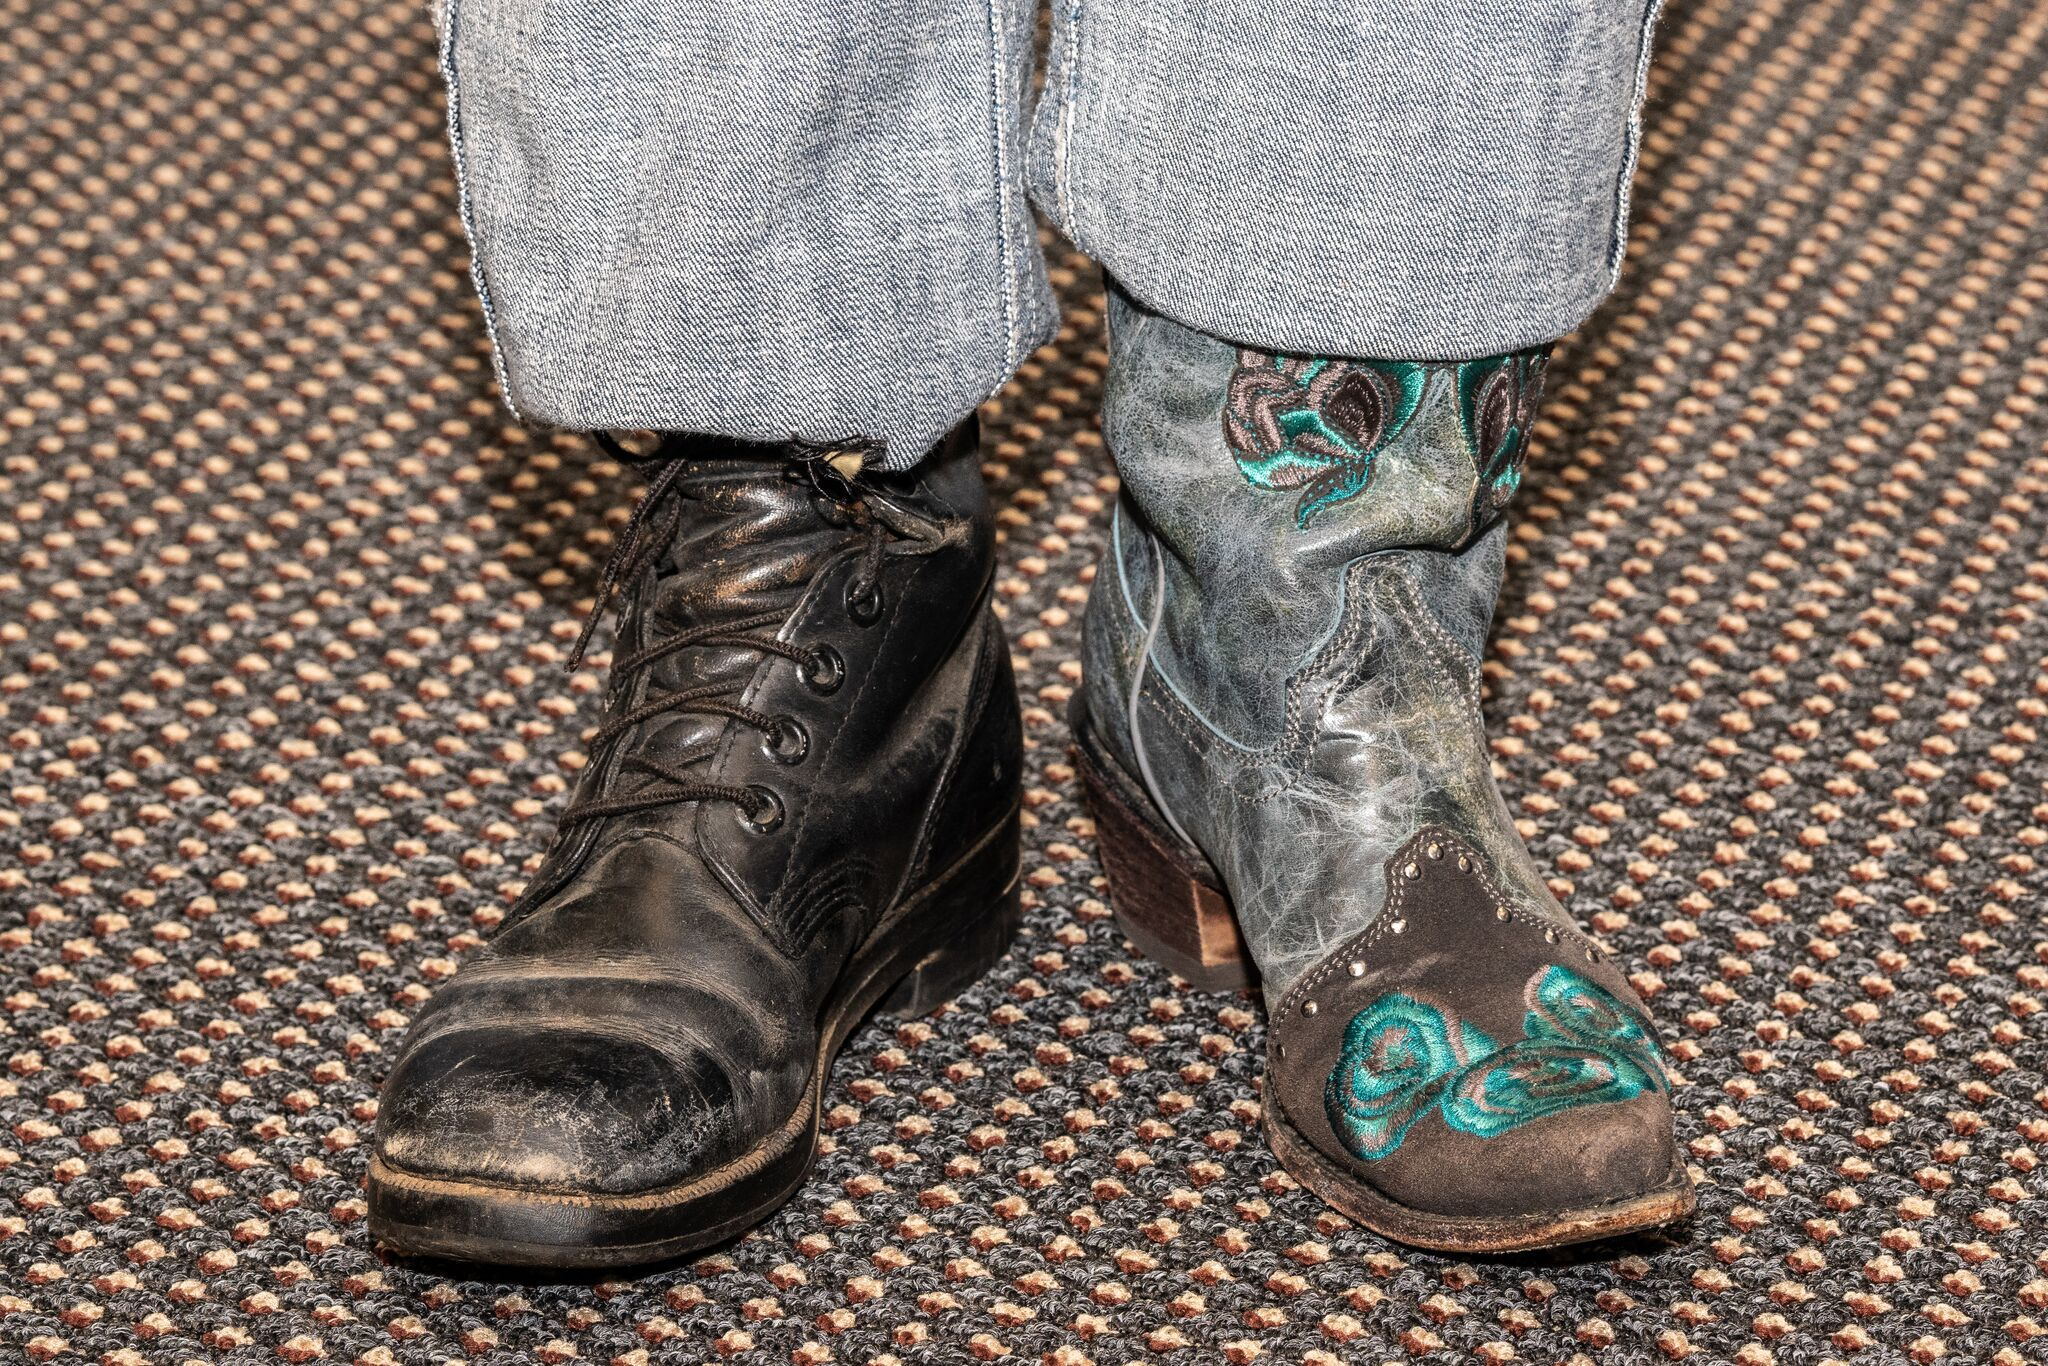 City of Lucas City Manager, Joni Clarke, still has her combat boots